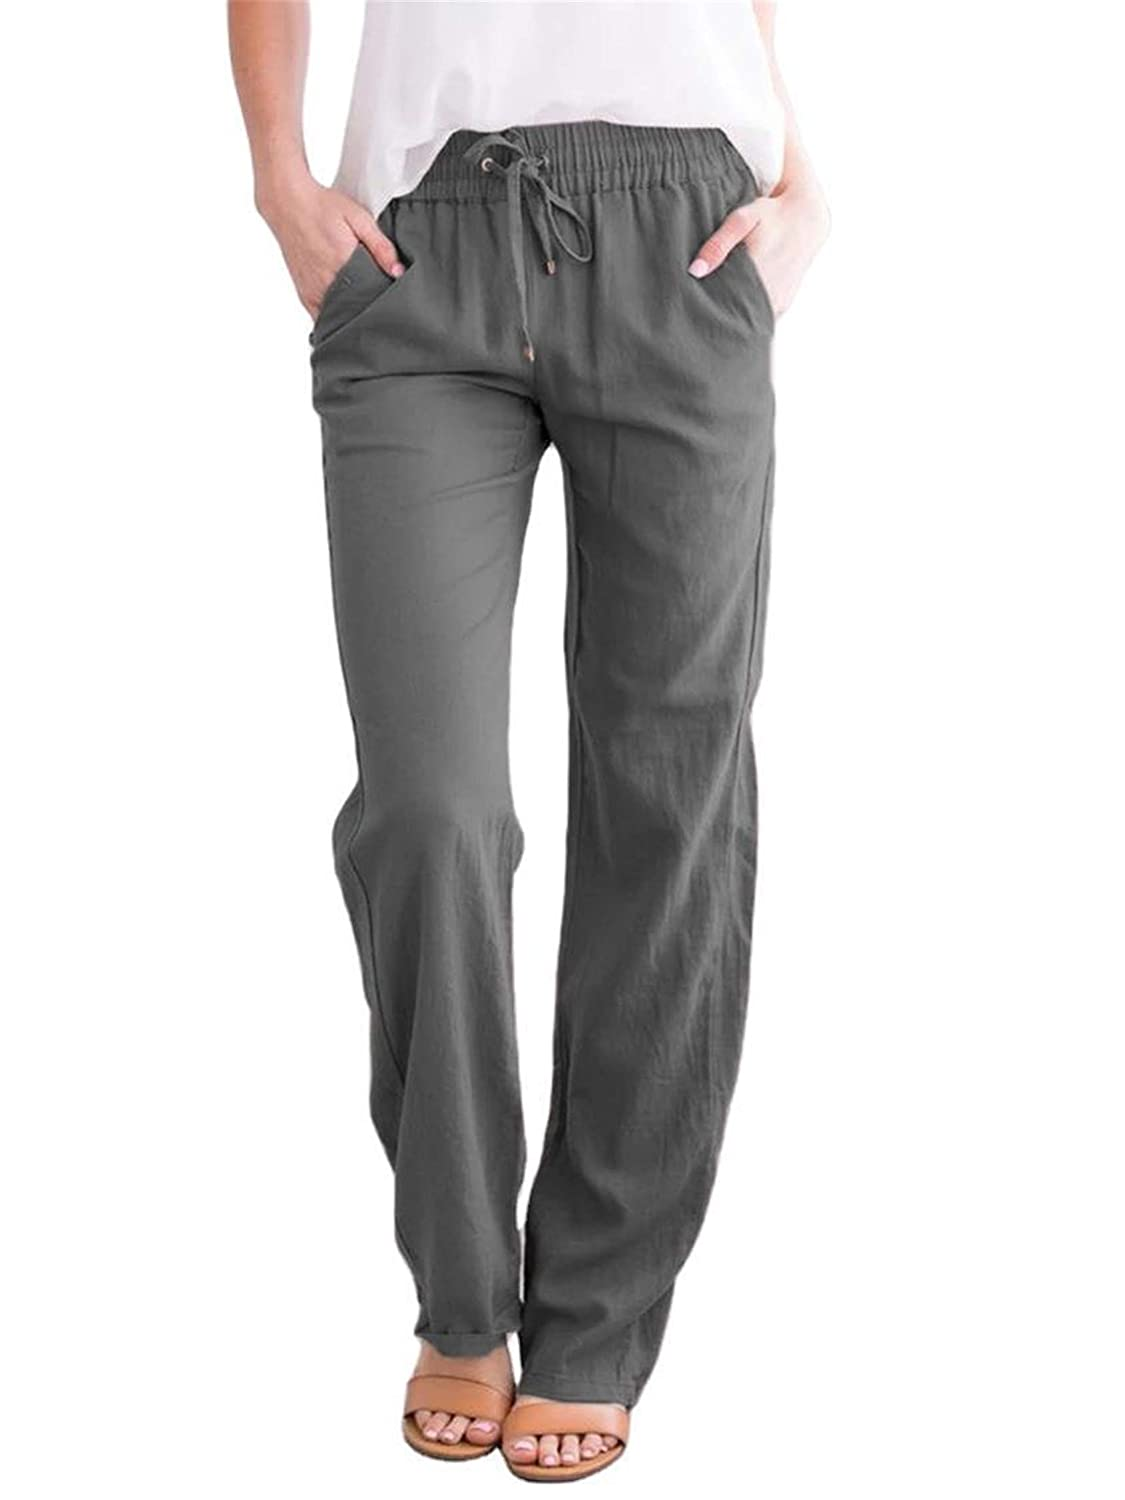 Women's Elastic Drawstring Tapered Pant Casual Linen Lightweight Pants Cotton Summer Trousers (XX-Large,Dark gray)